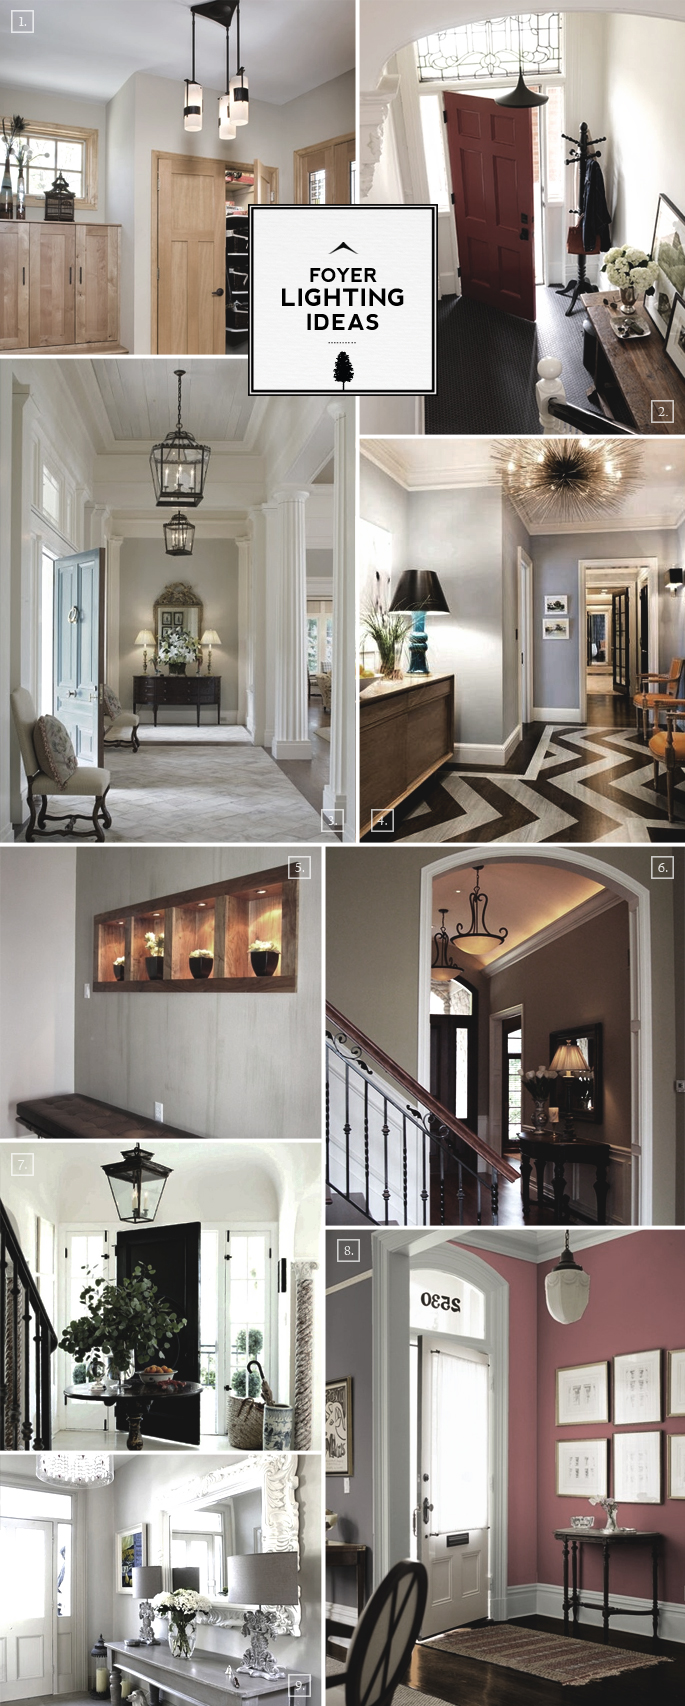 Foyer Lighting Ideas Pictures : Entry foyer lighting ideas for large and small spaces